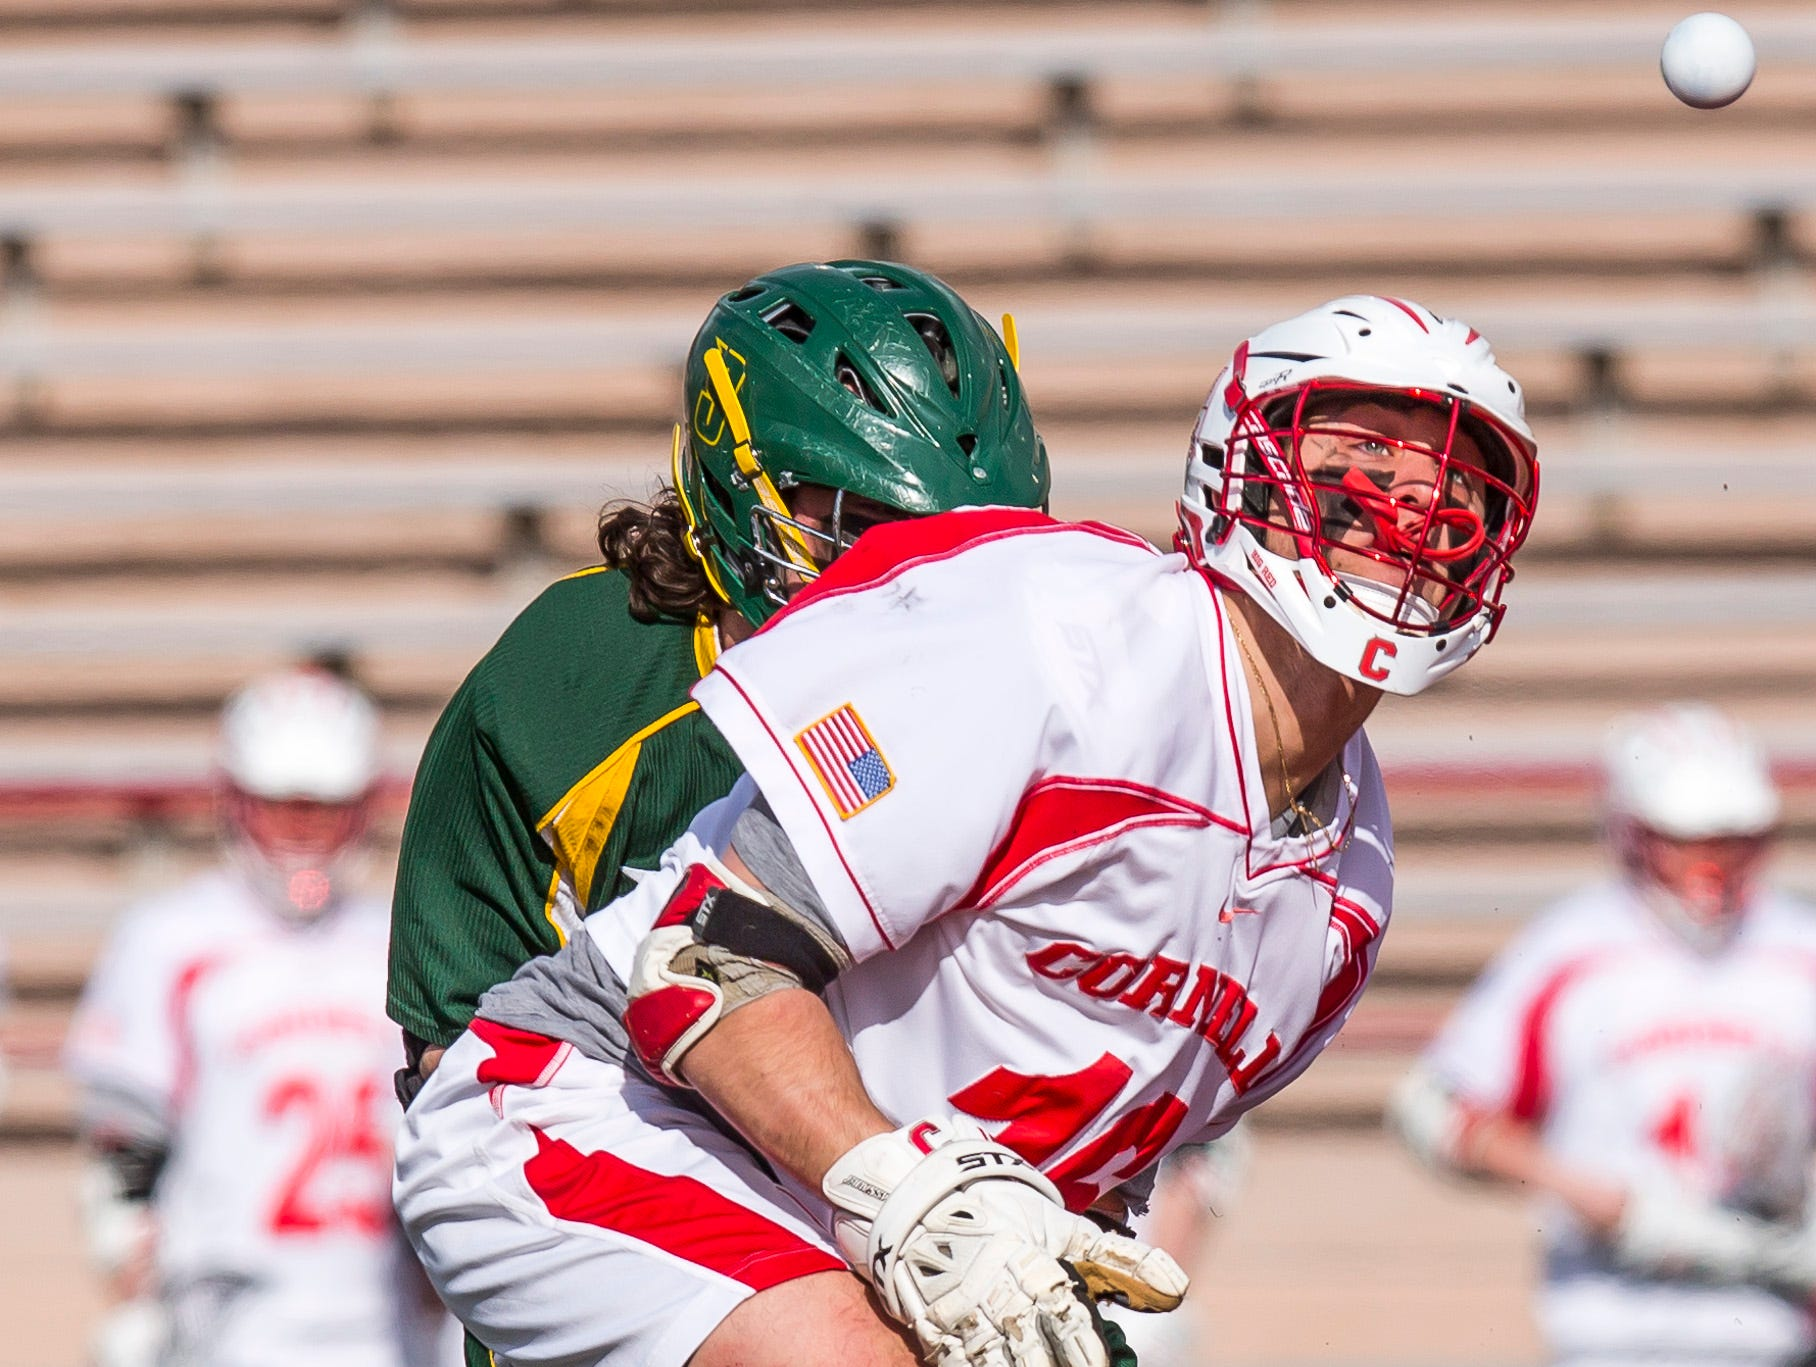 2013: Cornell junior Doug Tesoriero eyes the ball during during a faceoff in Cornell's 17 to 9 victory over Siena College Tuesday afternoon at Cornell's Schoellkopf Field.